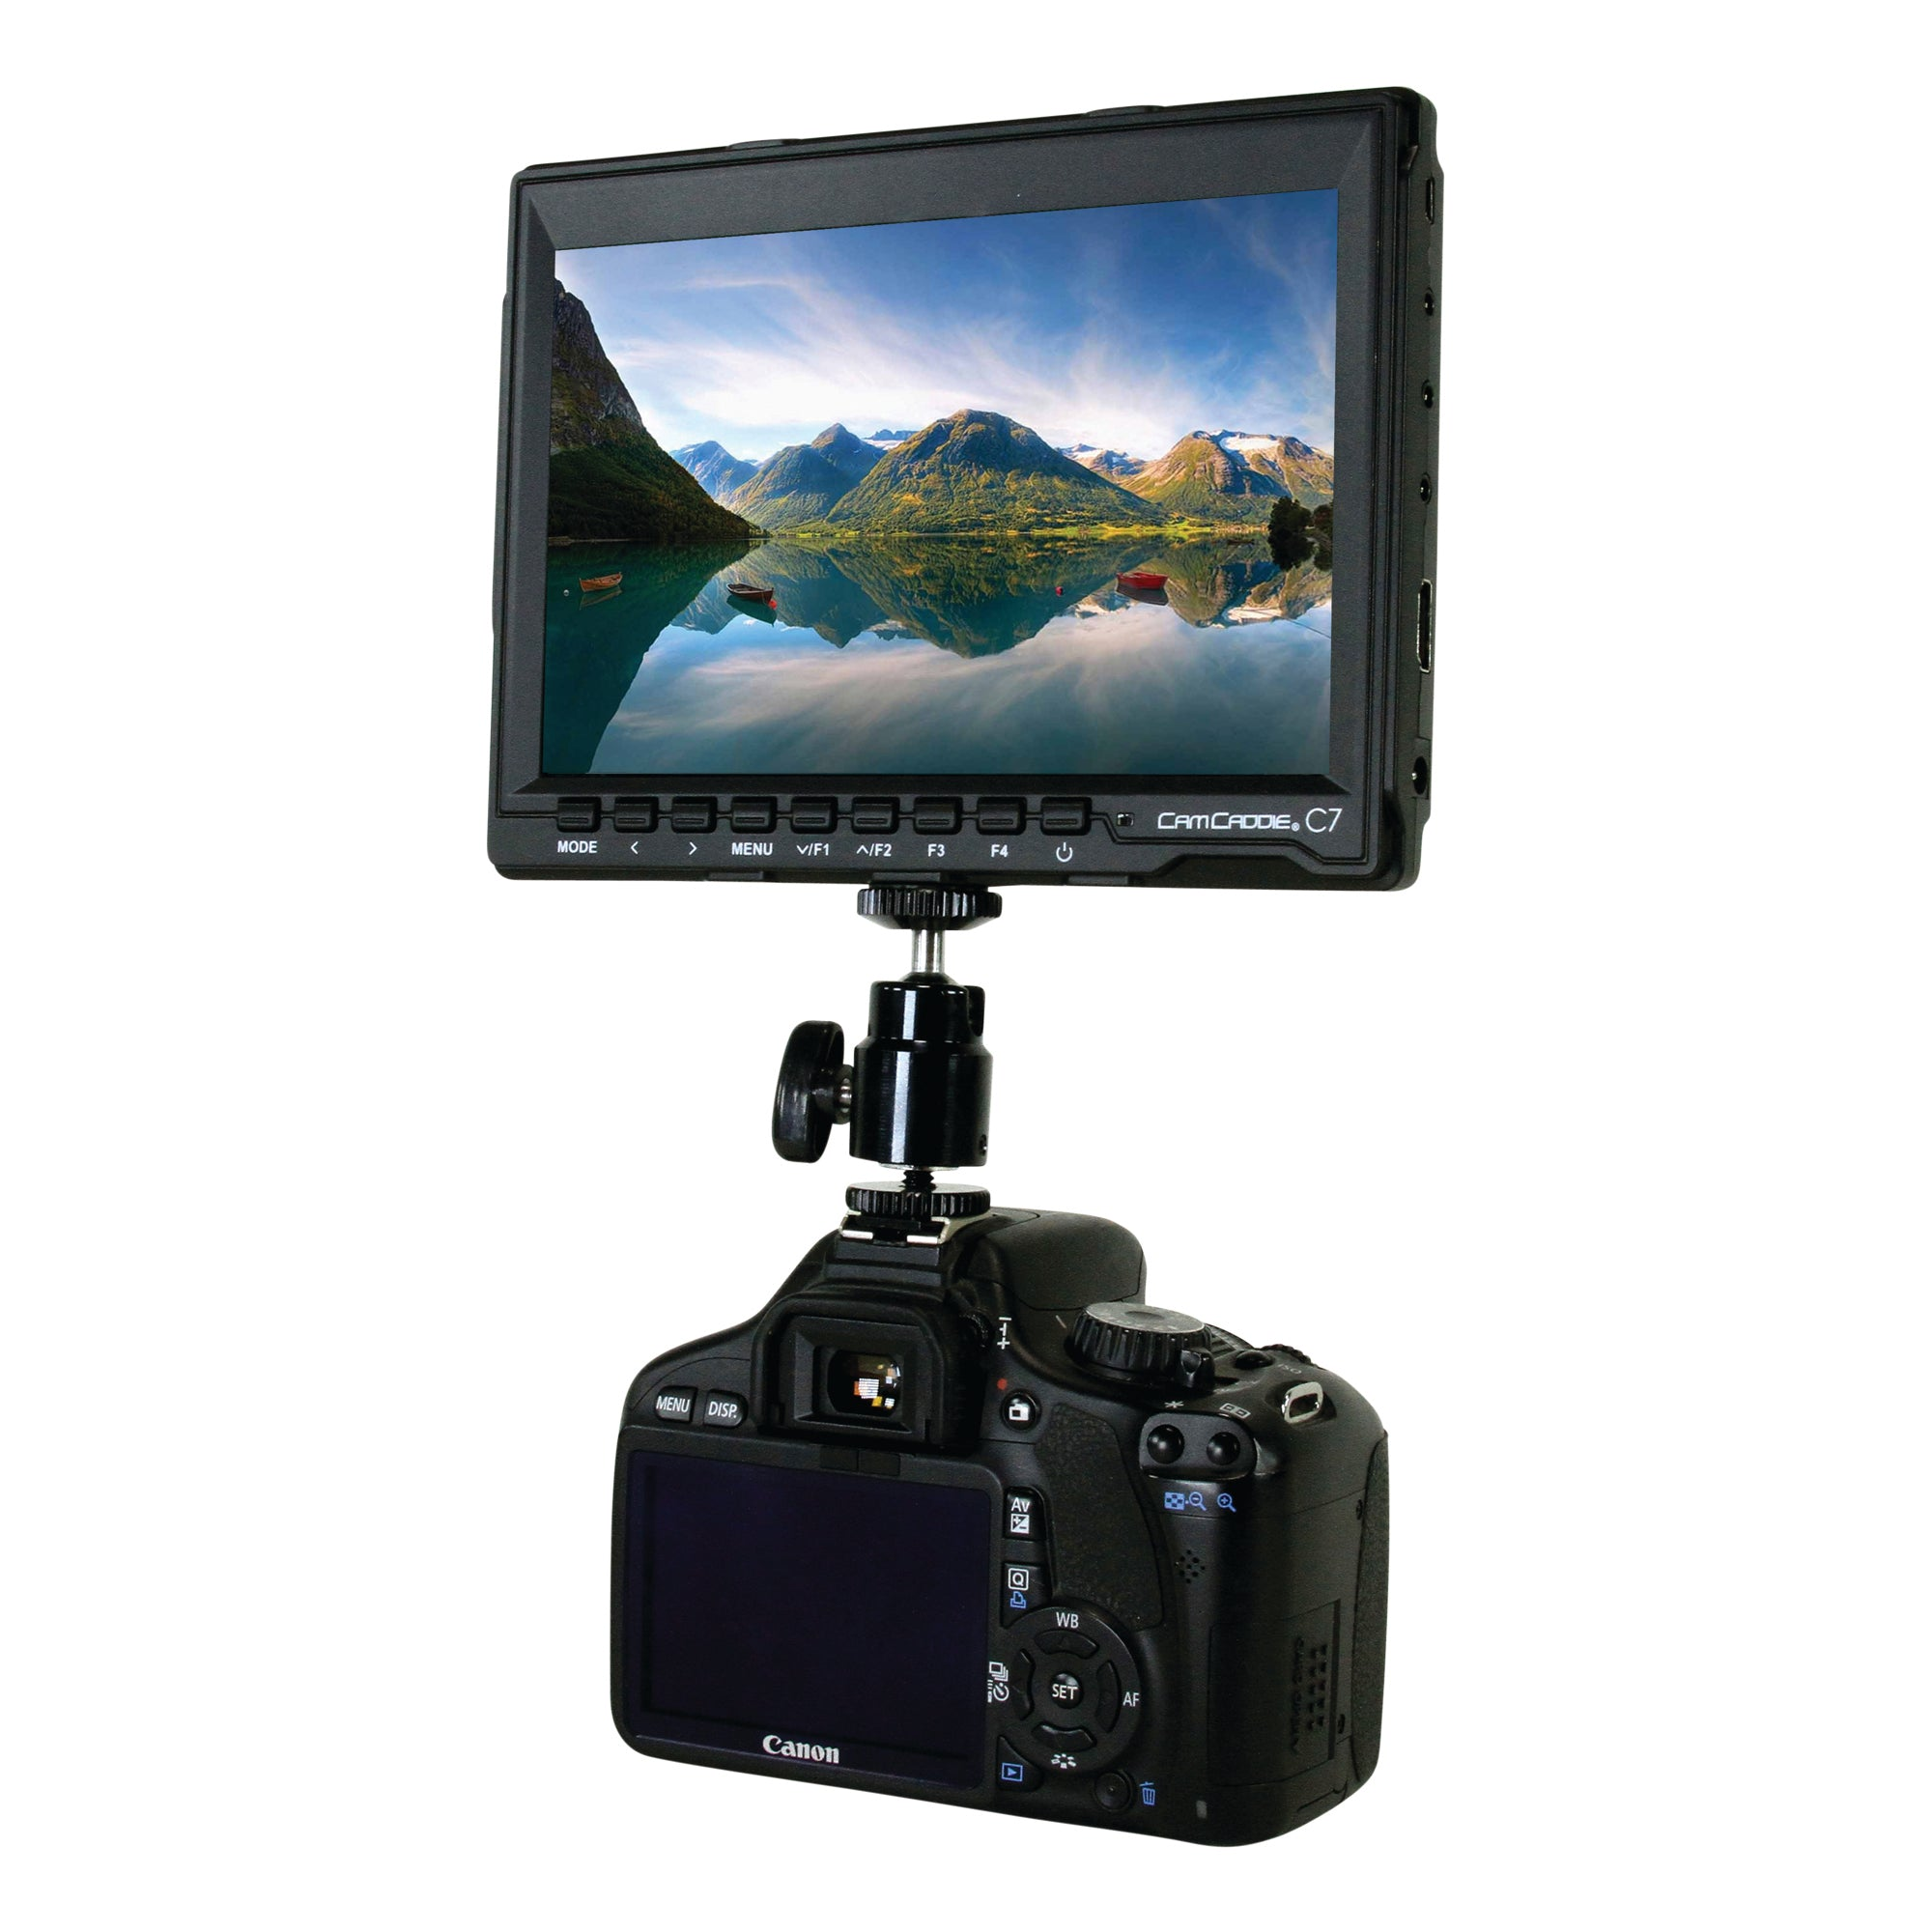 C7 Monitor + Canon LP-E6 Battery Plate - CamCaddie